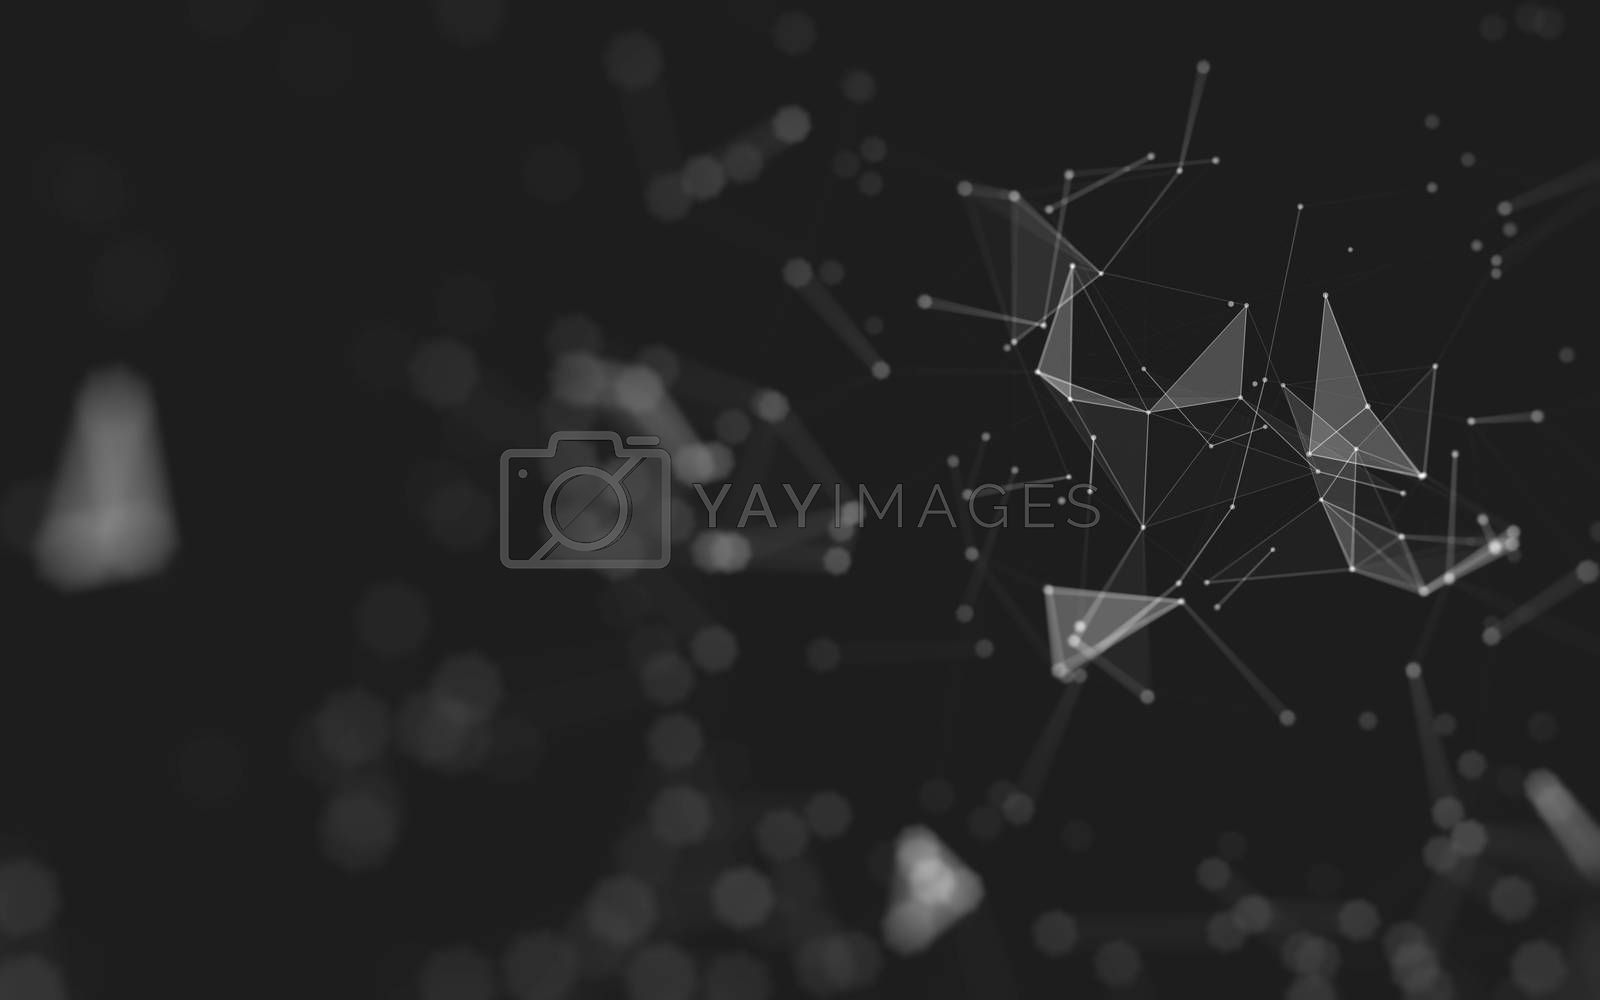 Royalty free image of Abstract polygonal space low poly dark background, 3d rendering by teerawit